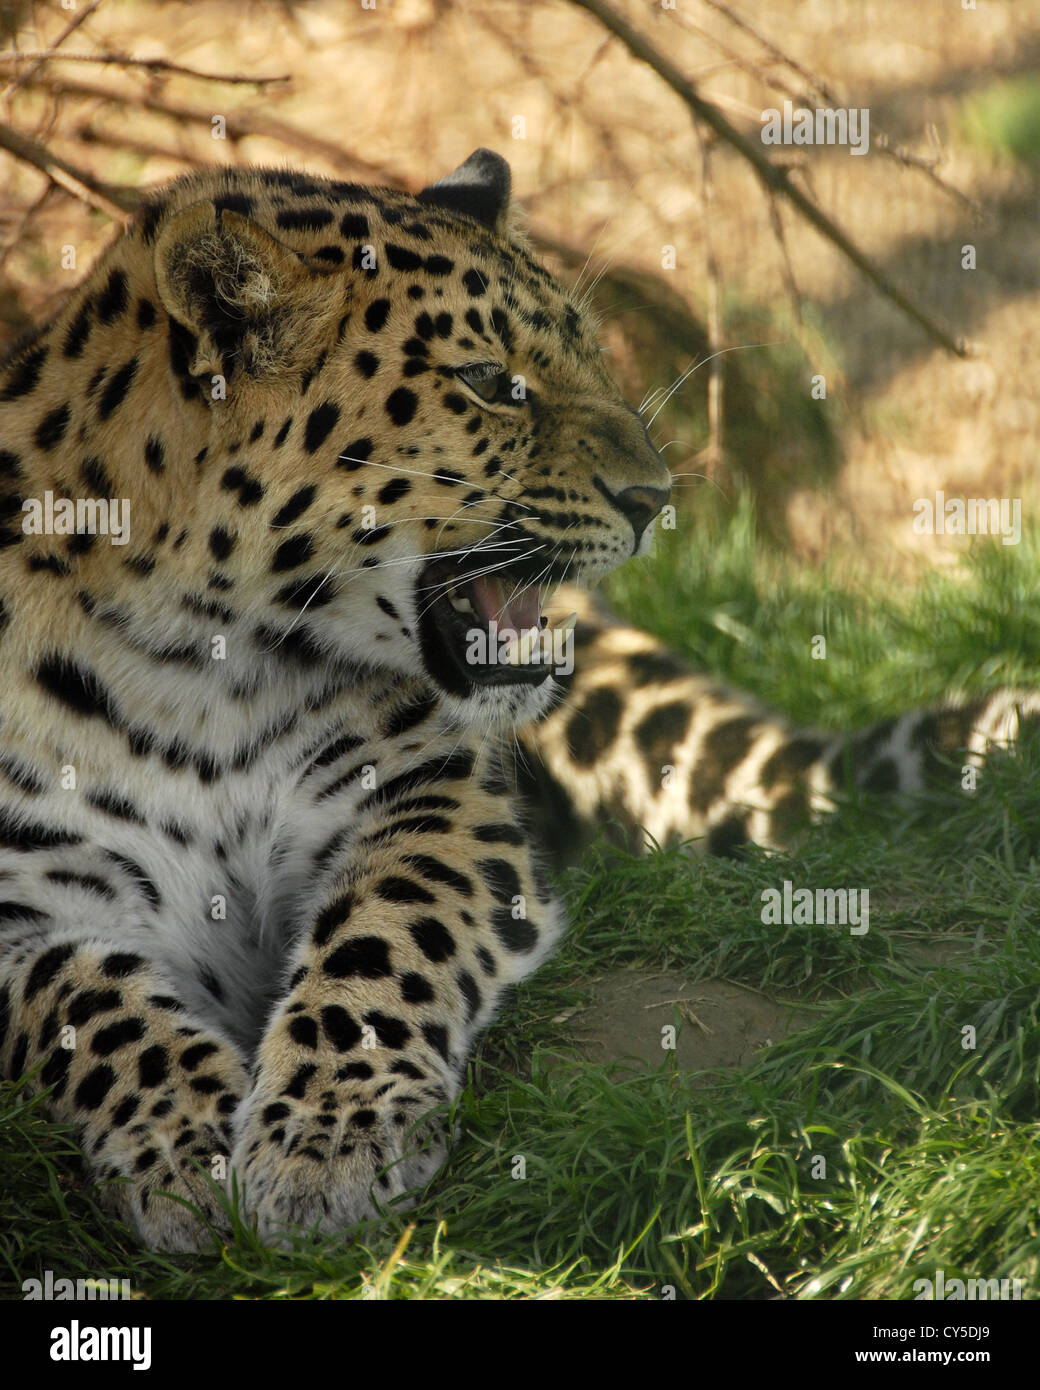 Amur Leopard lying on floor and snarling - Stock Image